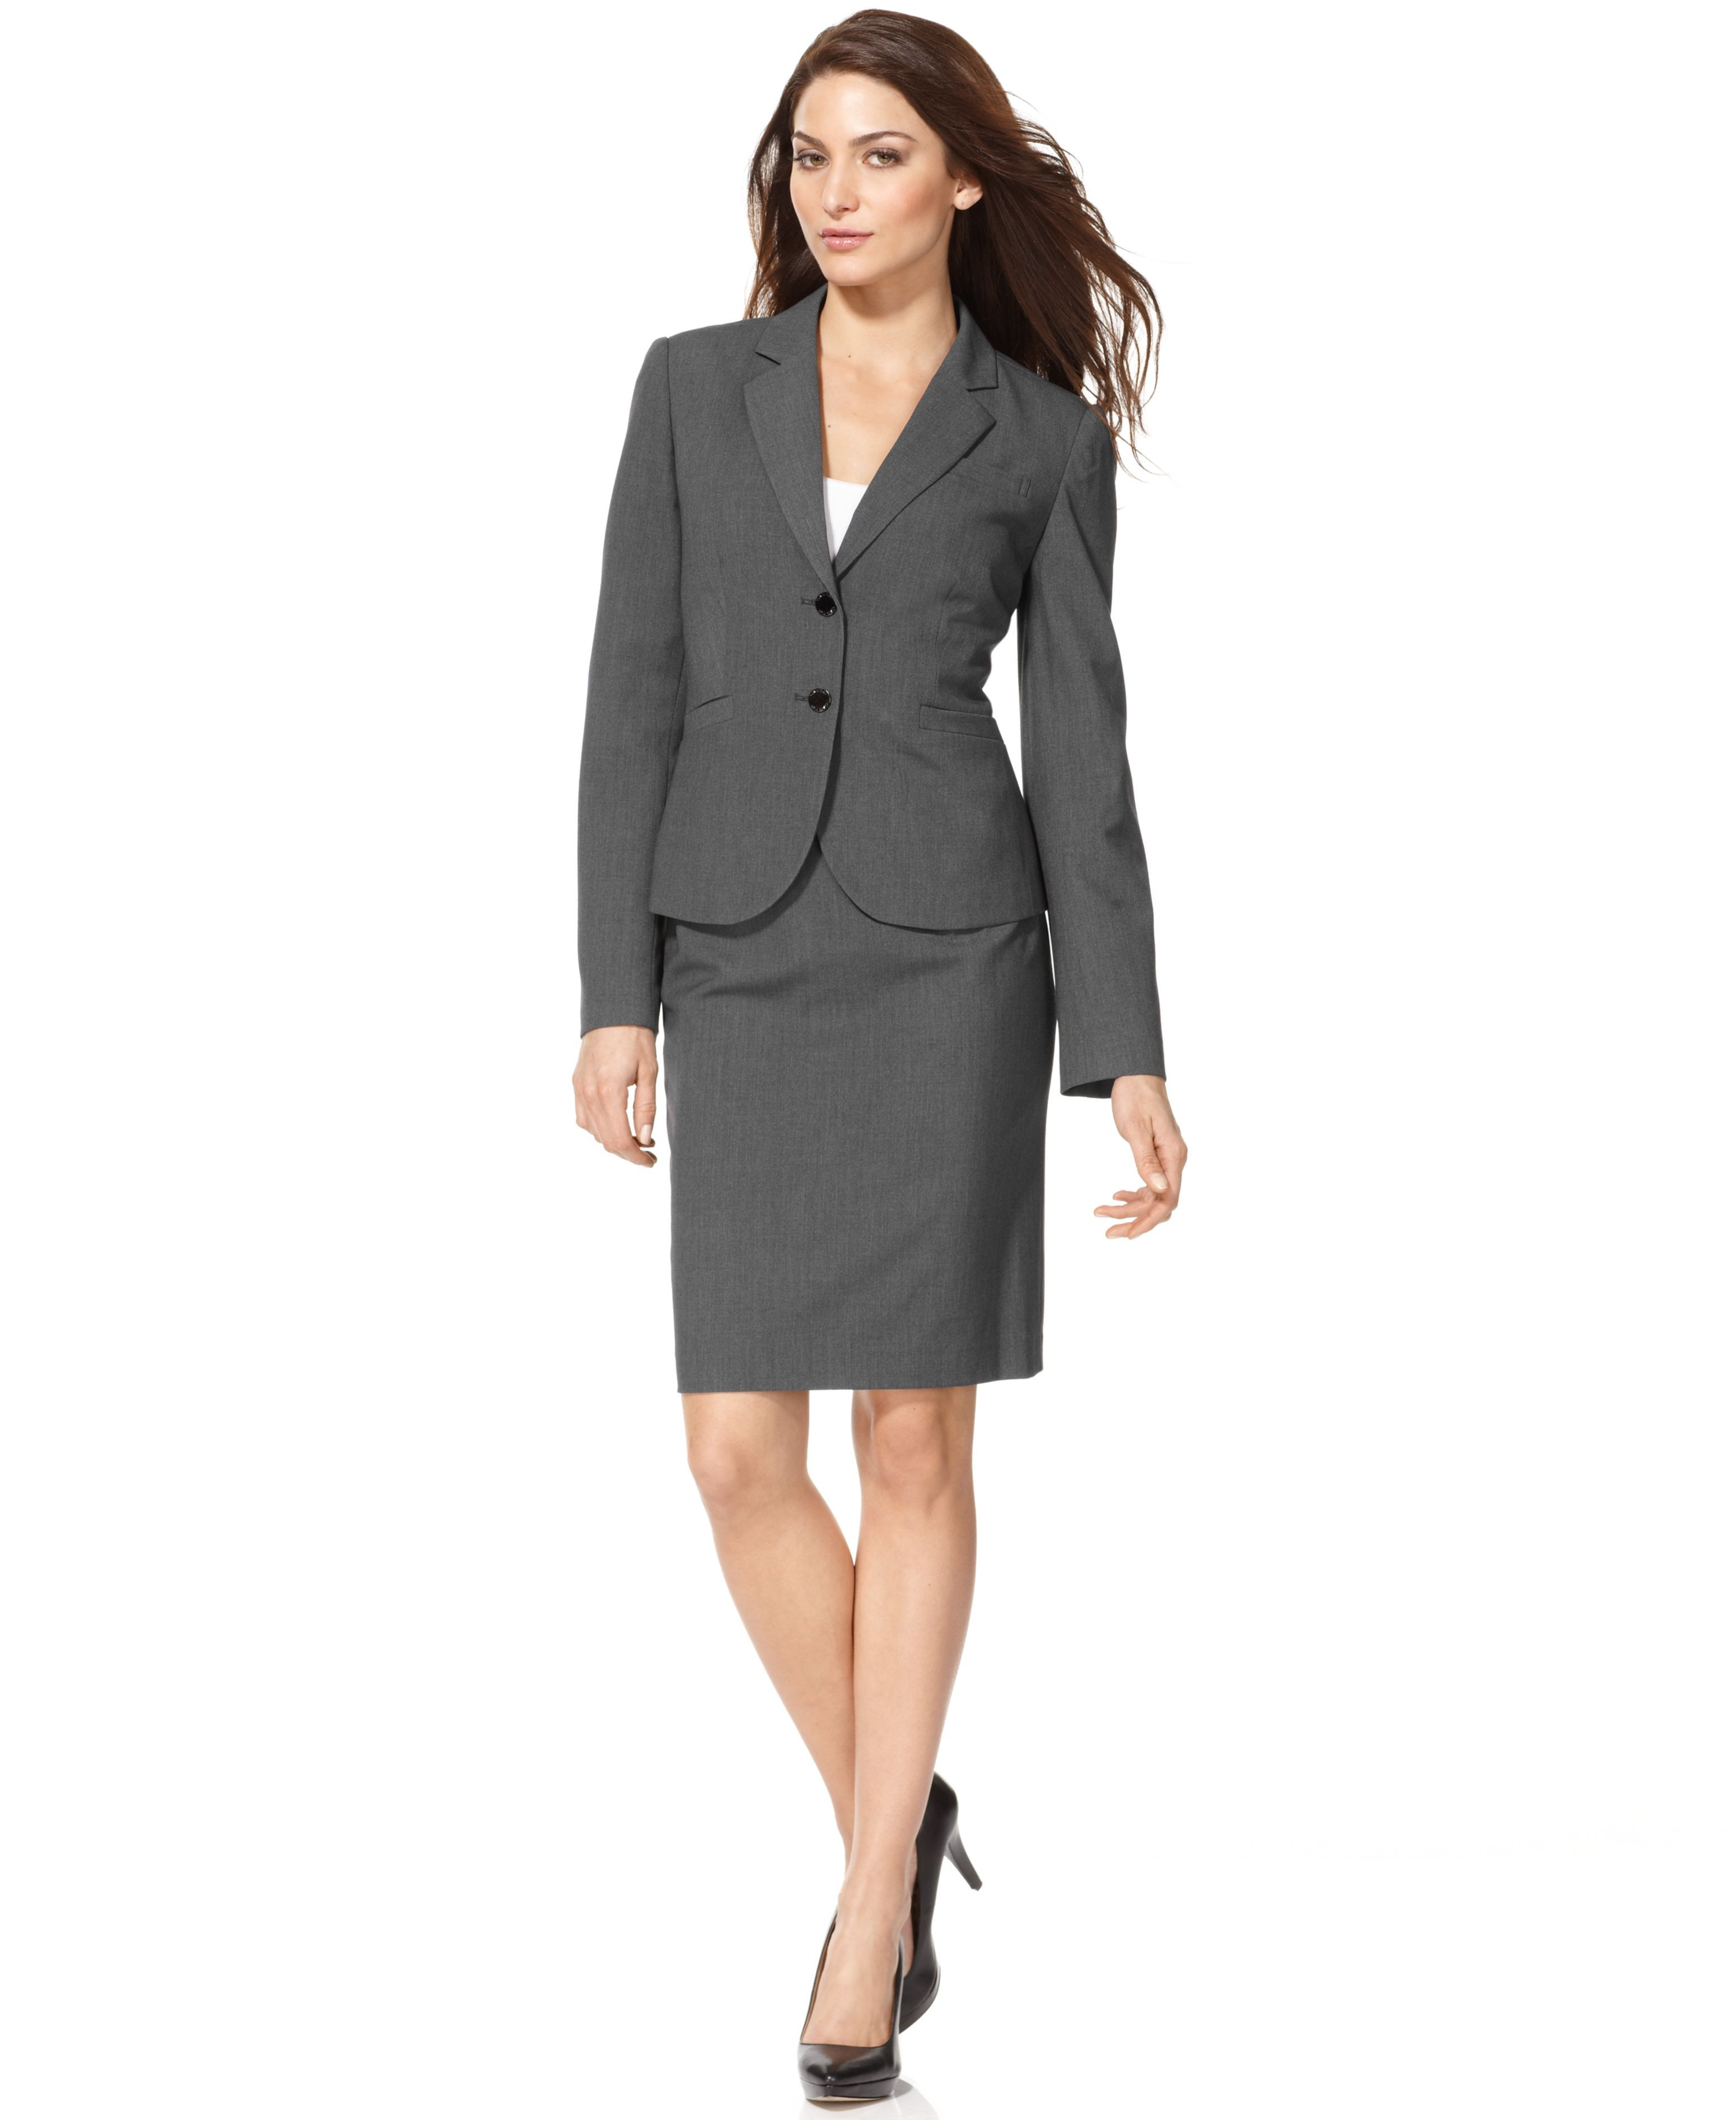 88dc248baa MACYS ---- Calvin Klein Two-Button Blazer Skirt Suit ---- 1157443_fpx ----  Christina Ionno ----